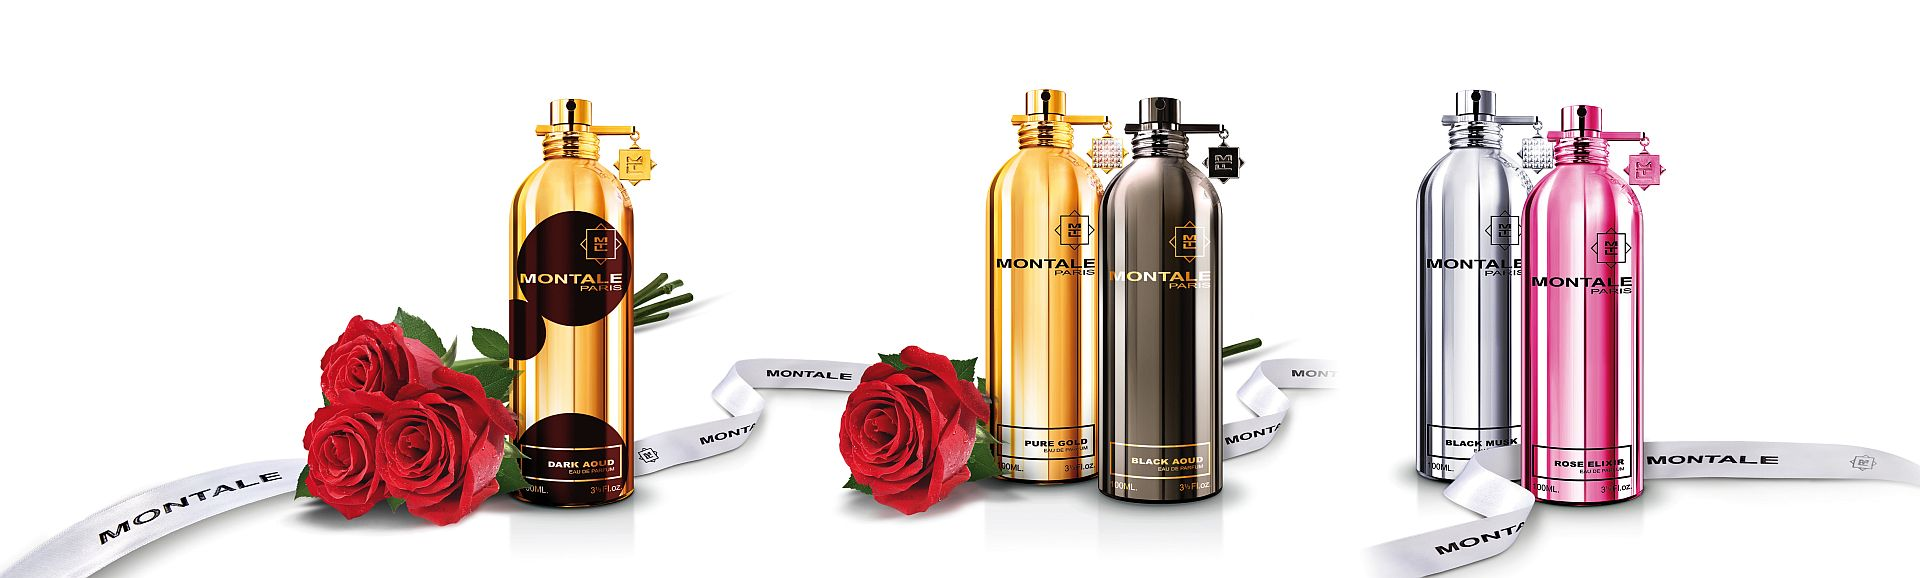 Thursday Scent Mood: Intense Cafe by Montale